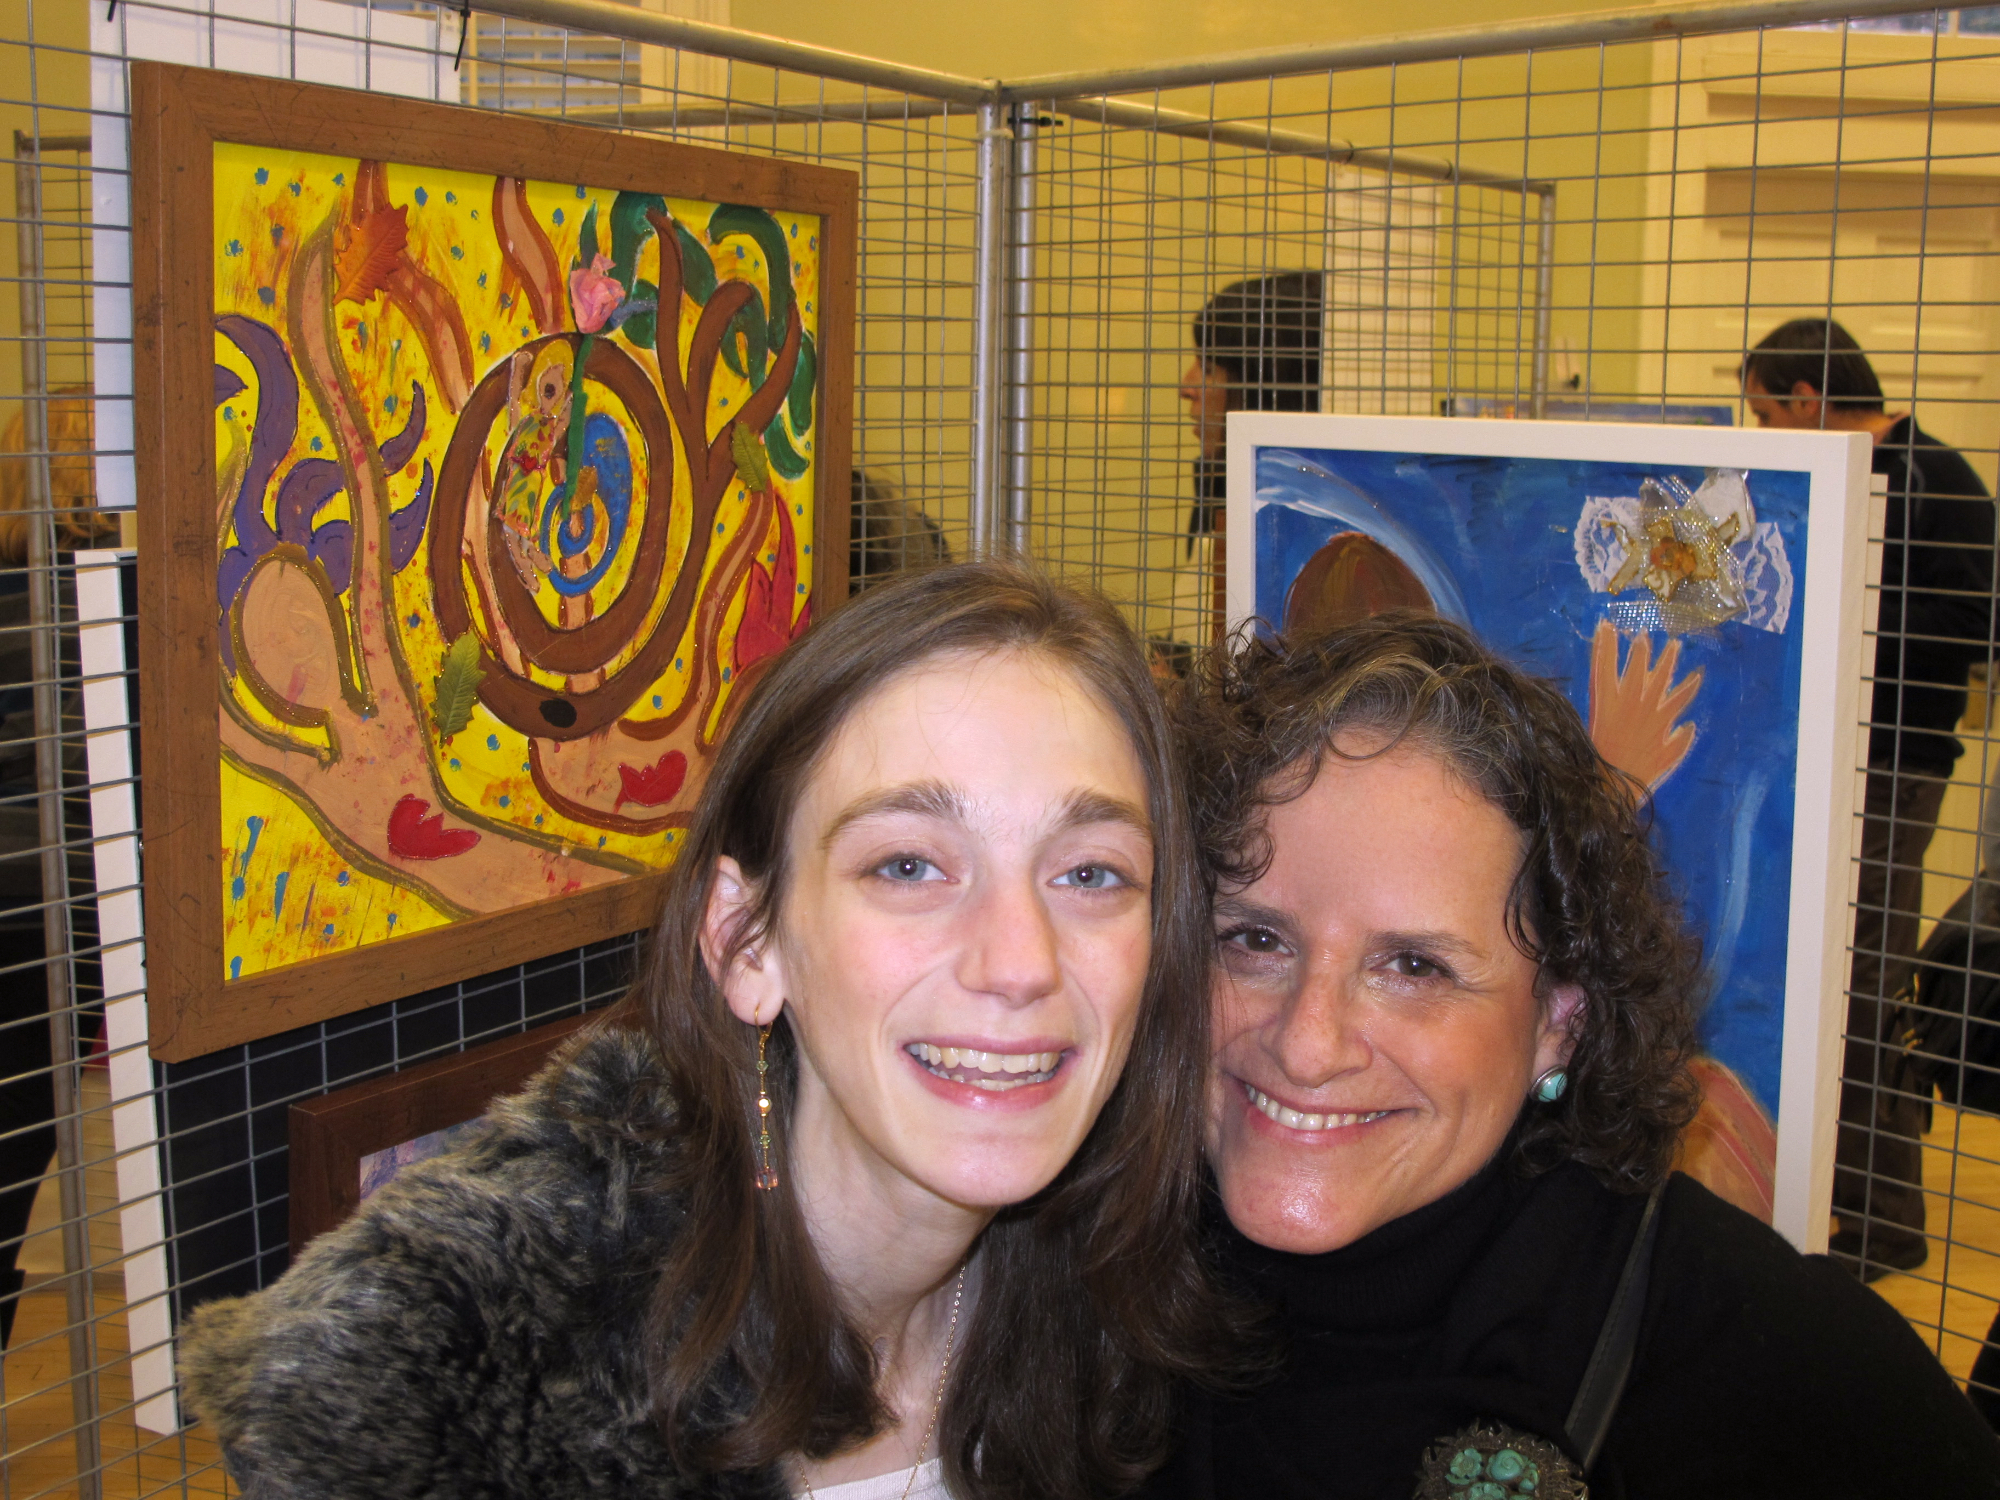 January 2011 - Leona planned and produced Amy Oestreicher's first solo art exhibition at The Westport Woman's Club.  Amy uses art as a creative means of coping with her serious ongoing medical issues.